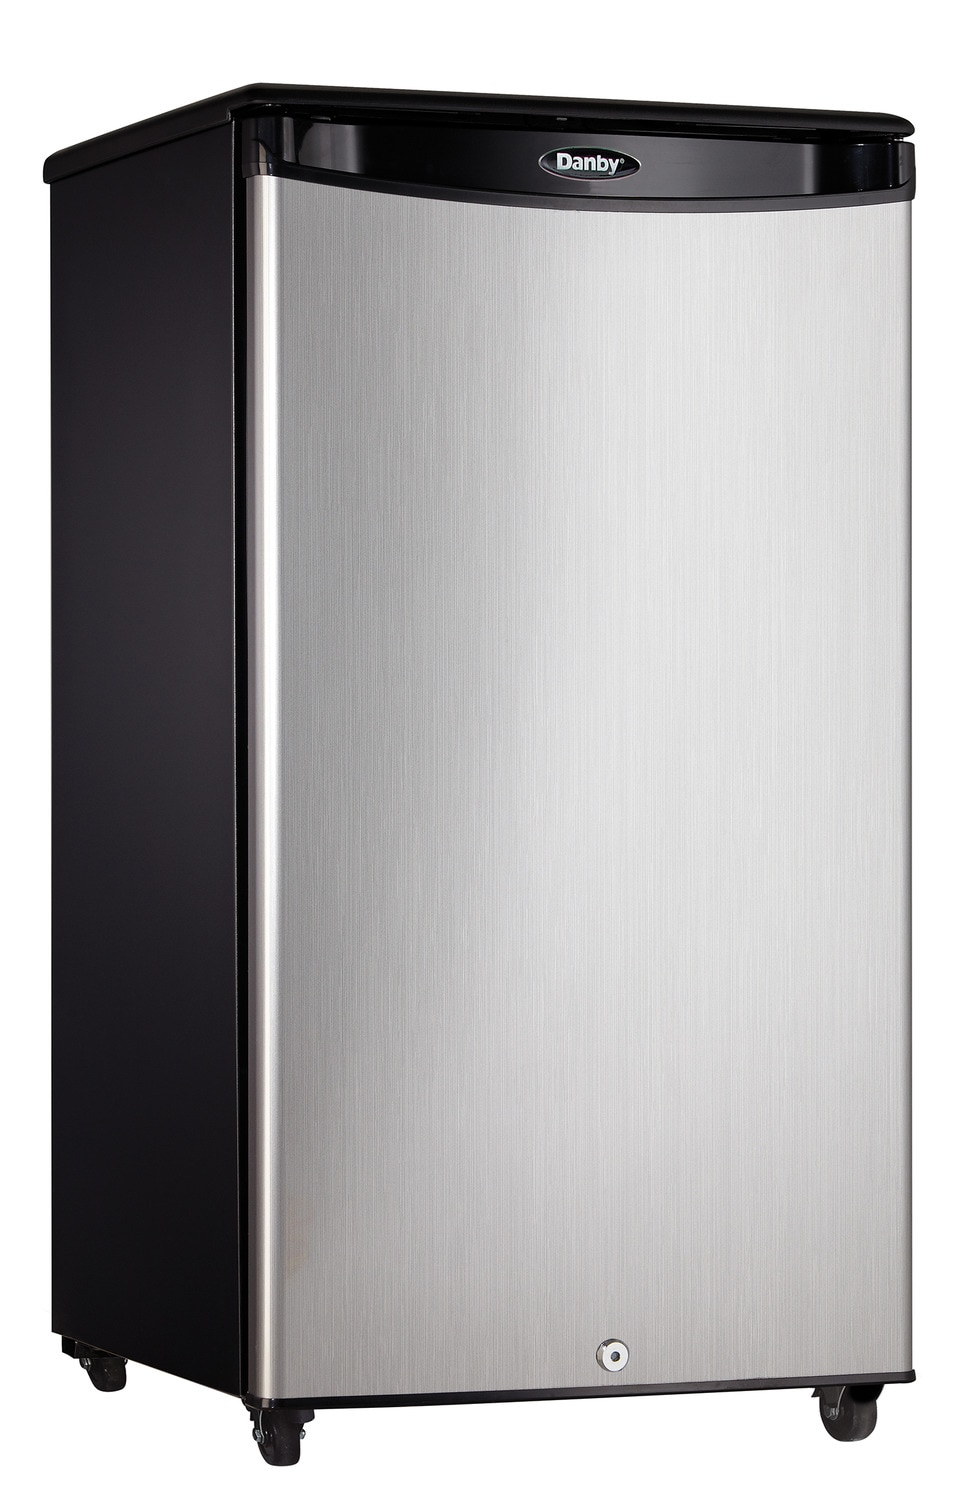 Refrigerators and Freezers - Danby Stainless Steel Outdoor Compact Refrigerator (3.3 Cu. Ft.) - DAR033A1BSLDBO